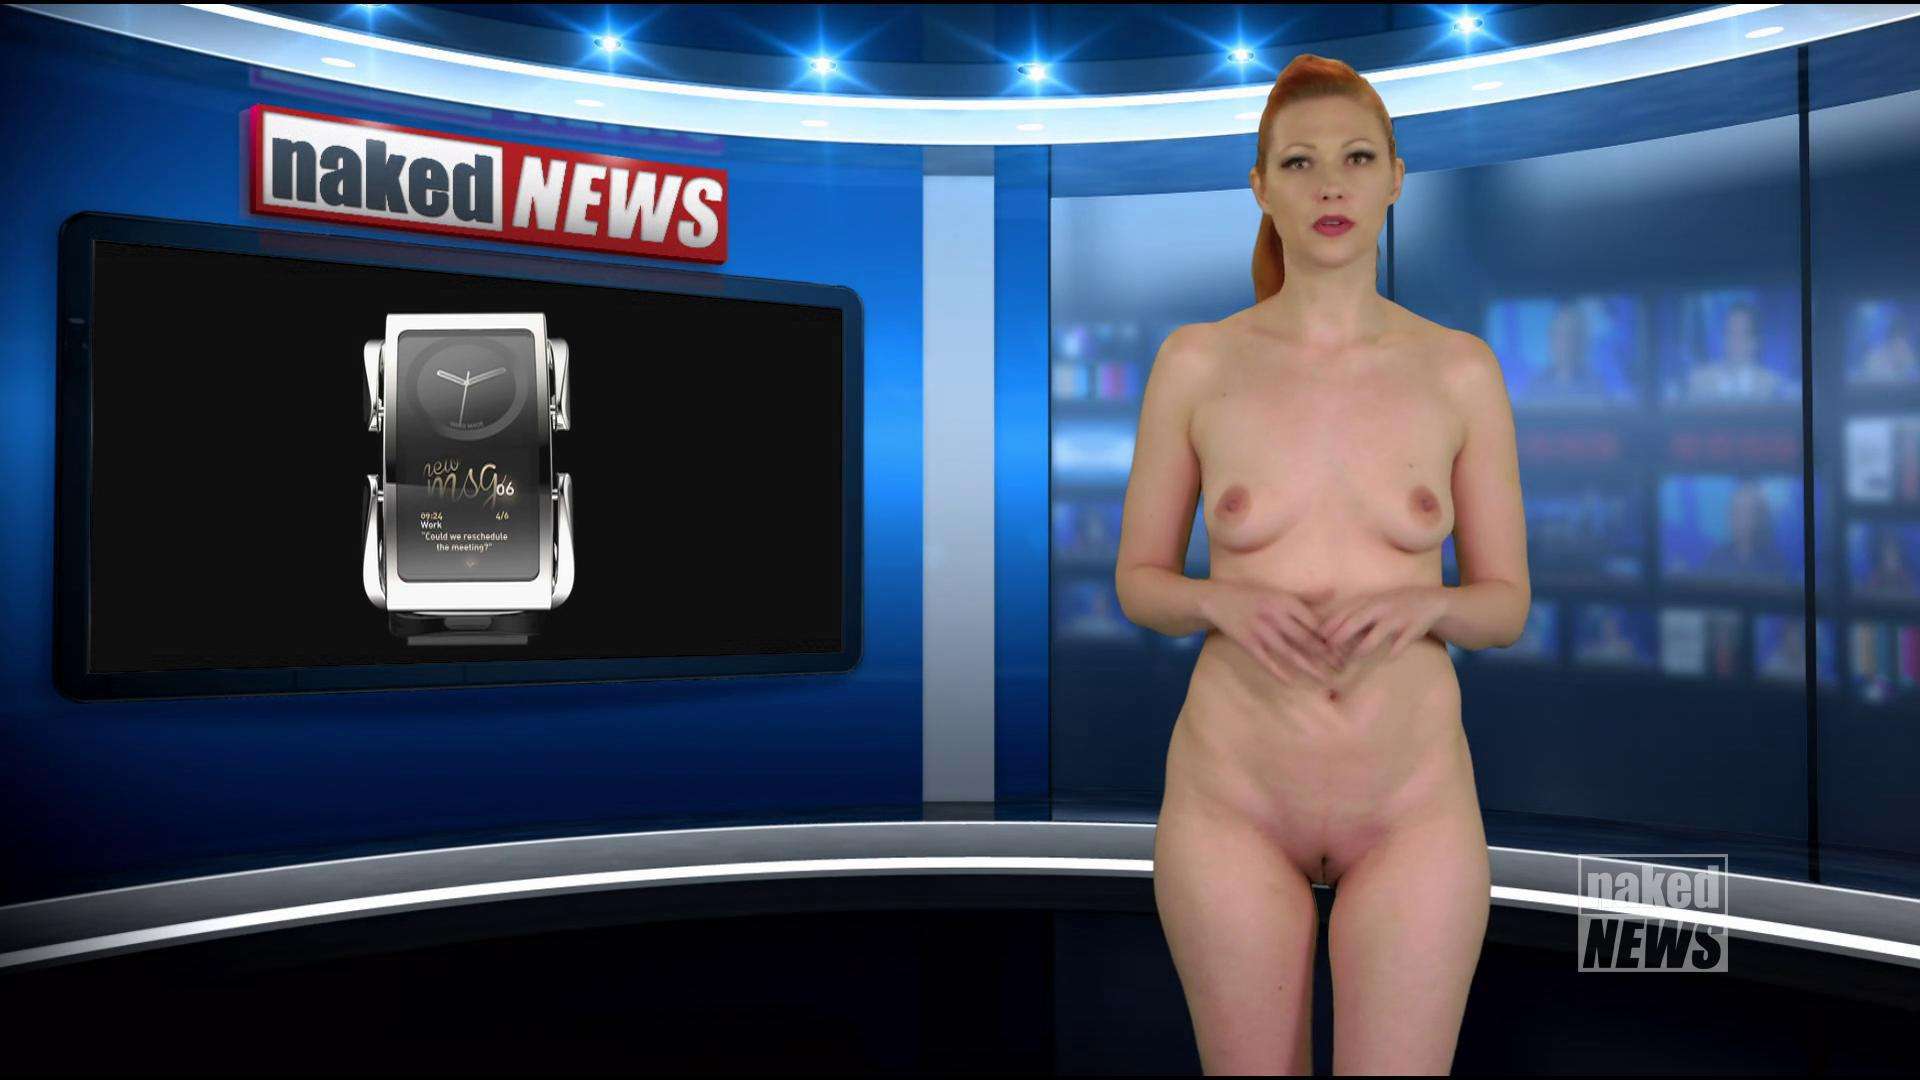 In naked news photo woman